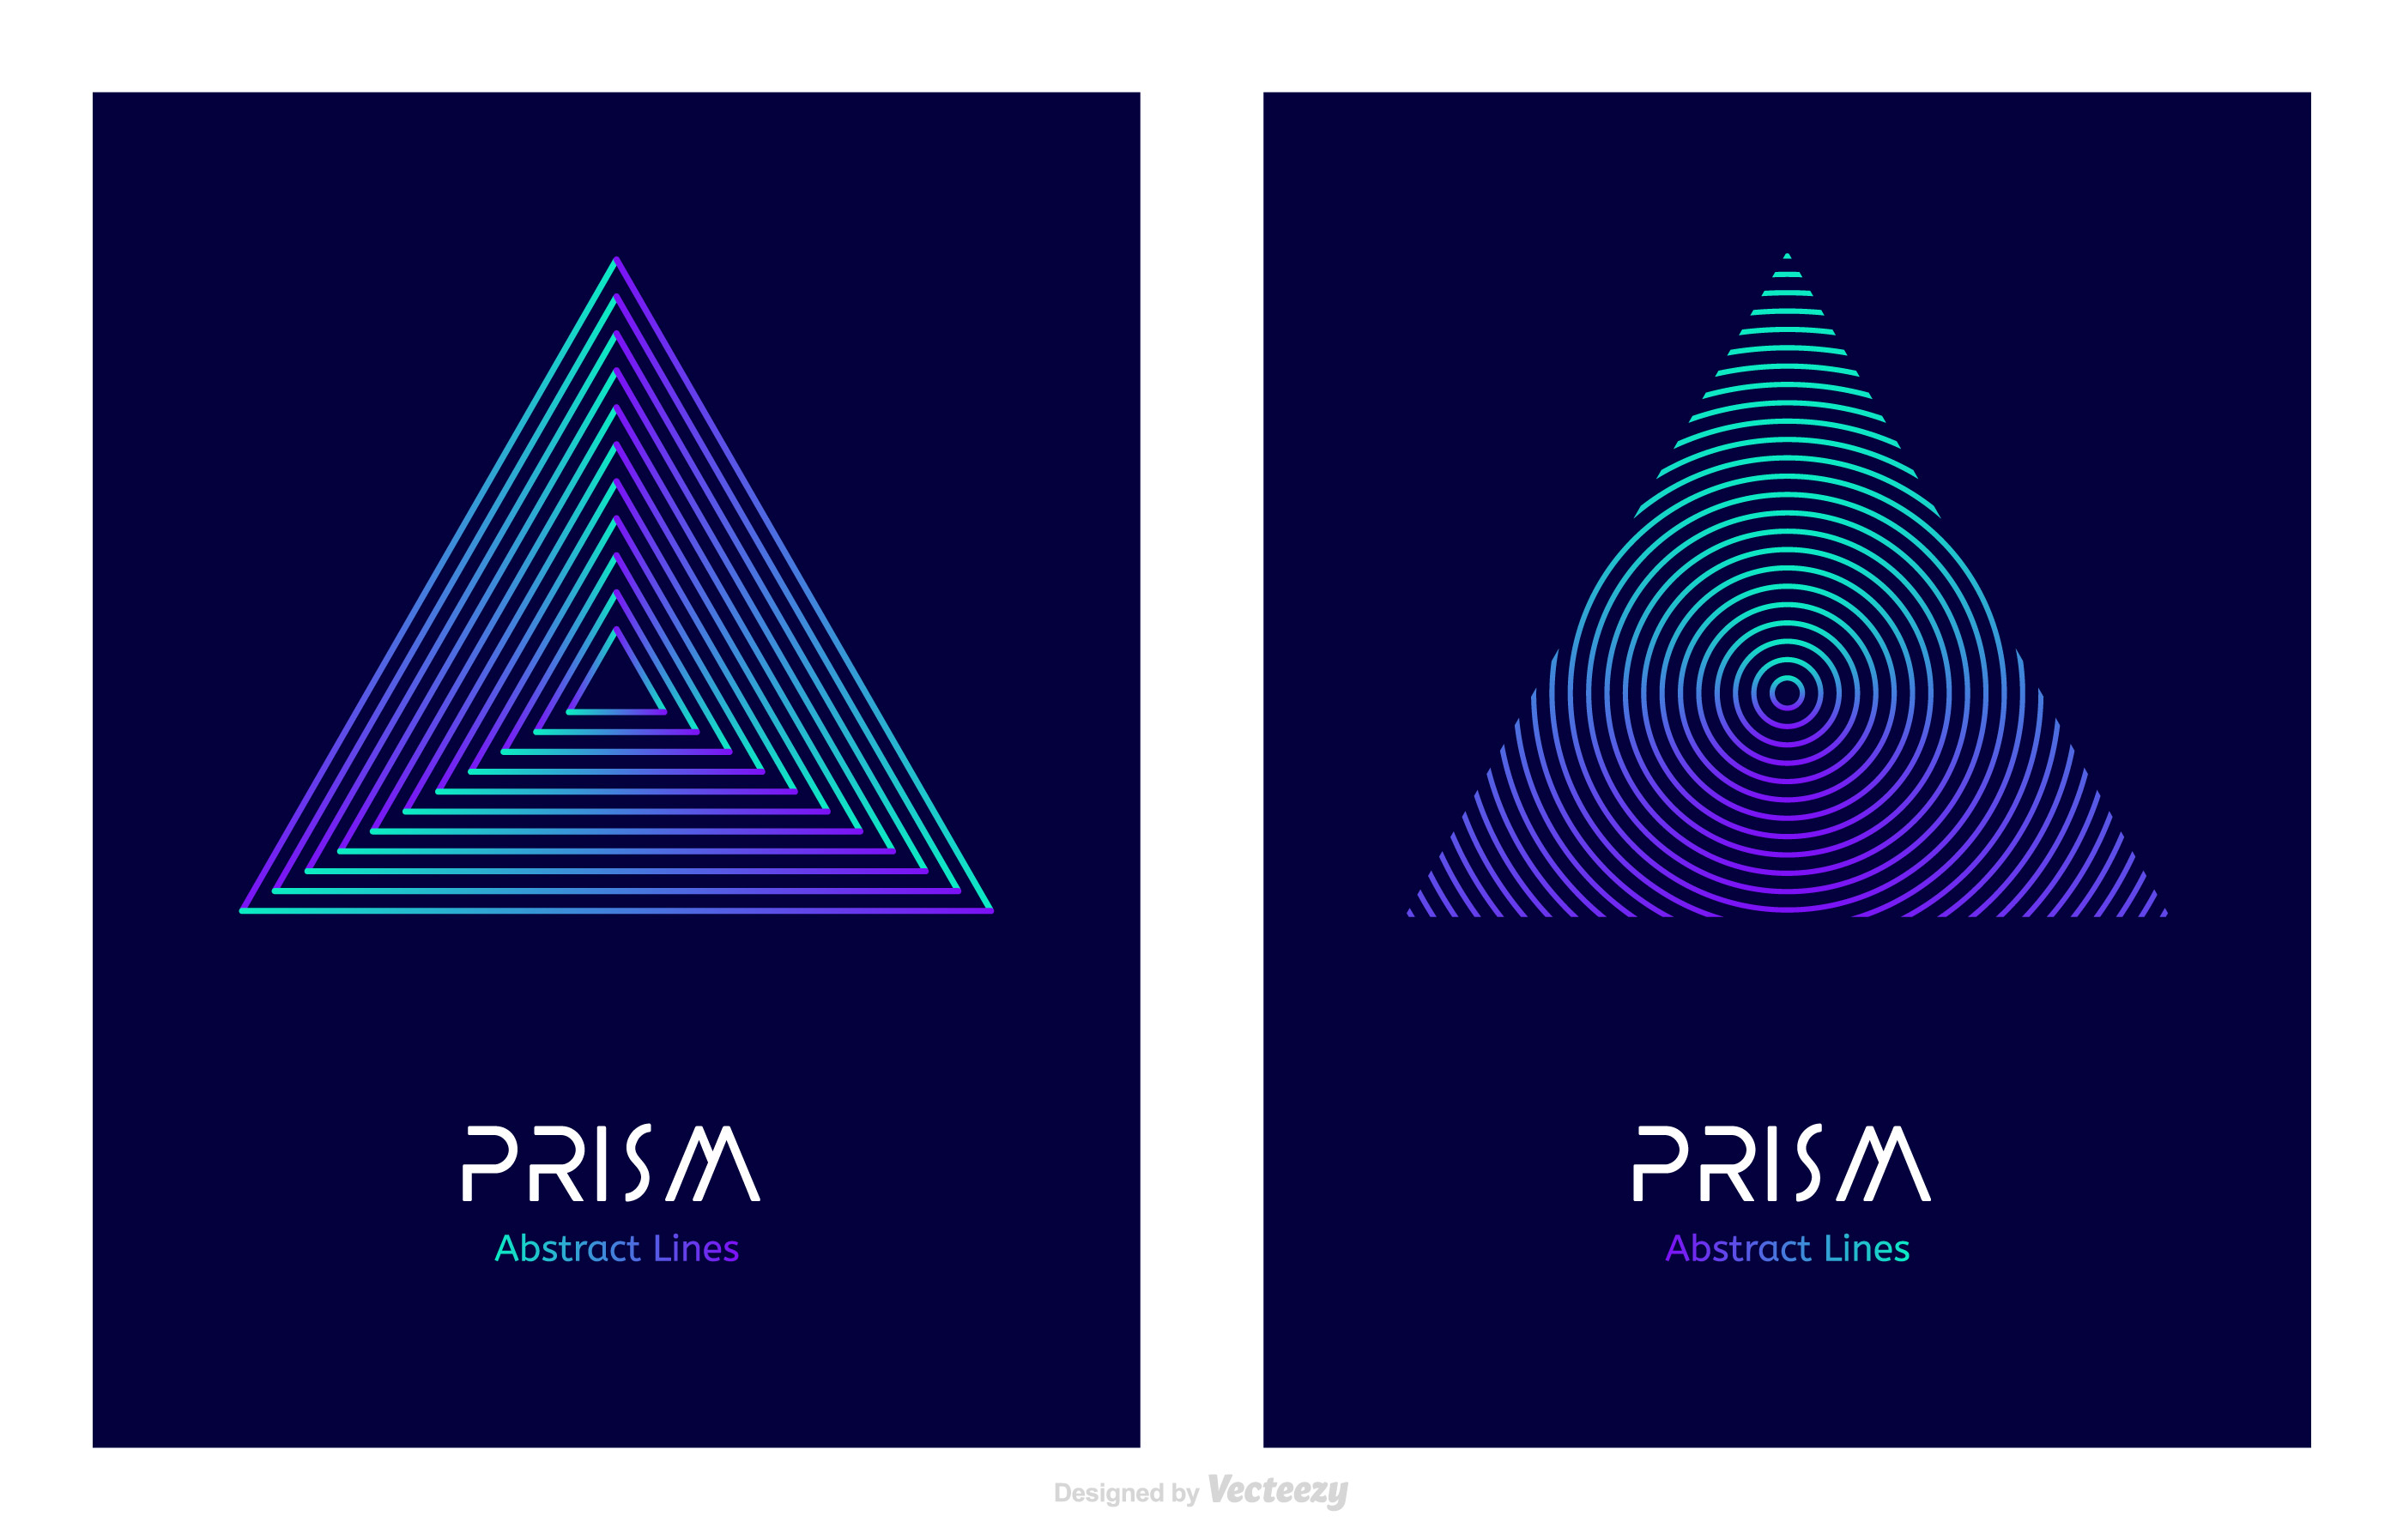 Abstract Line Design Prism Logo Vector Template